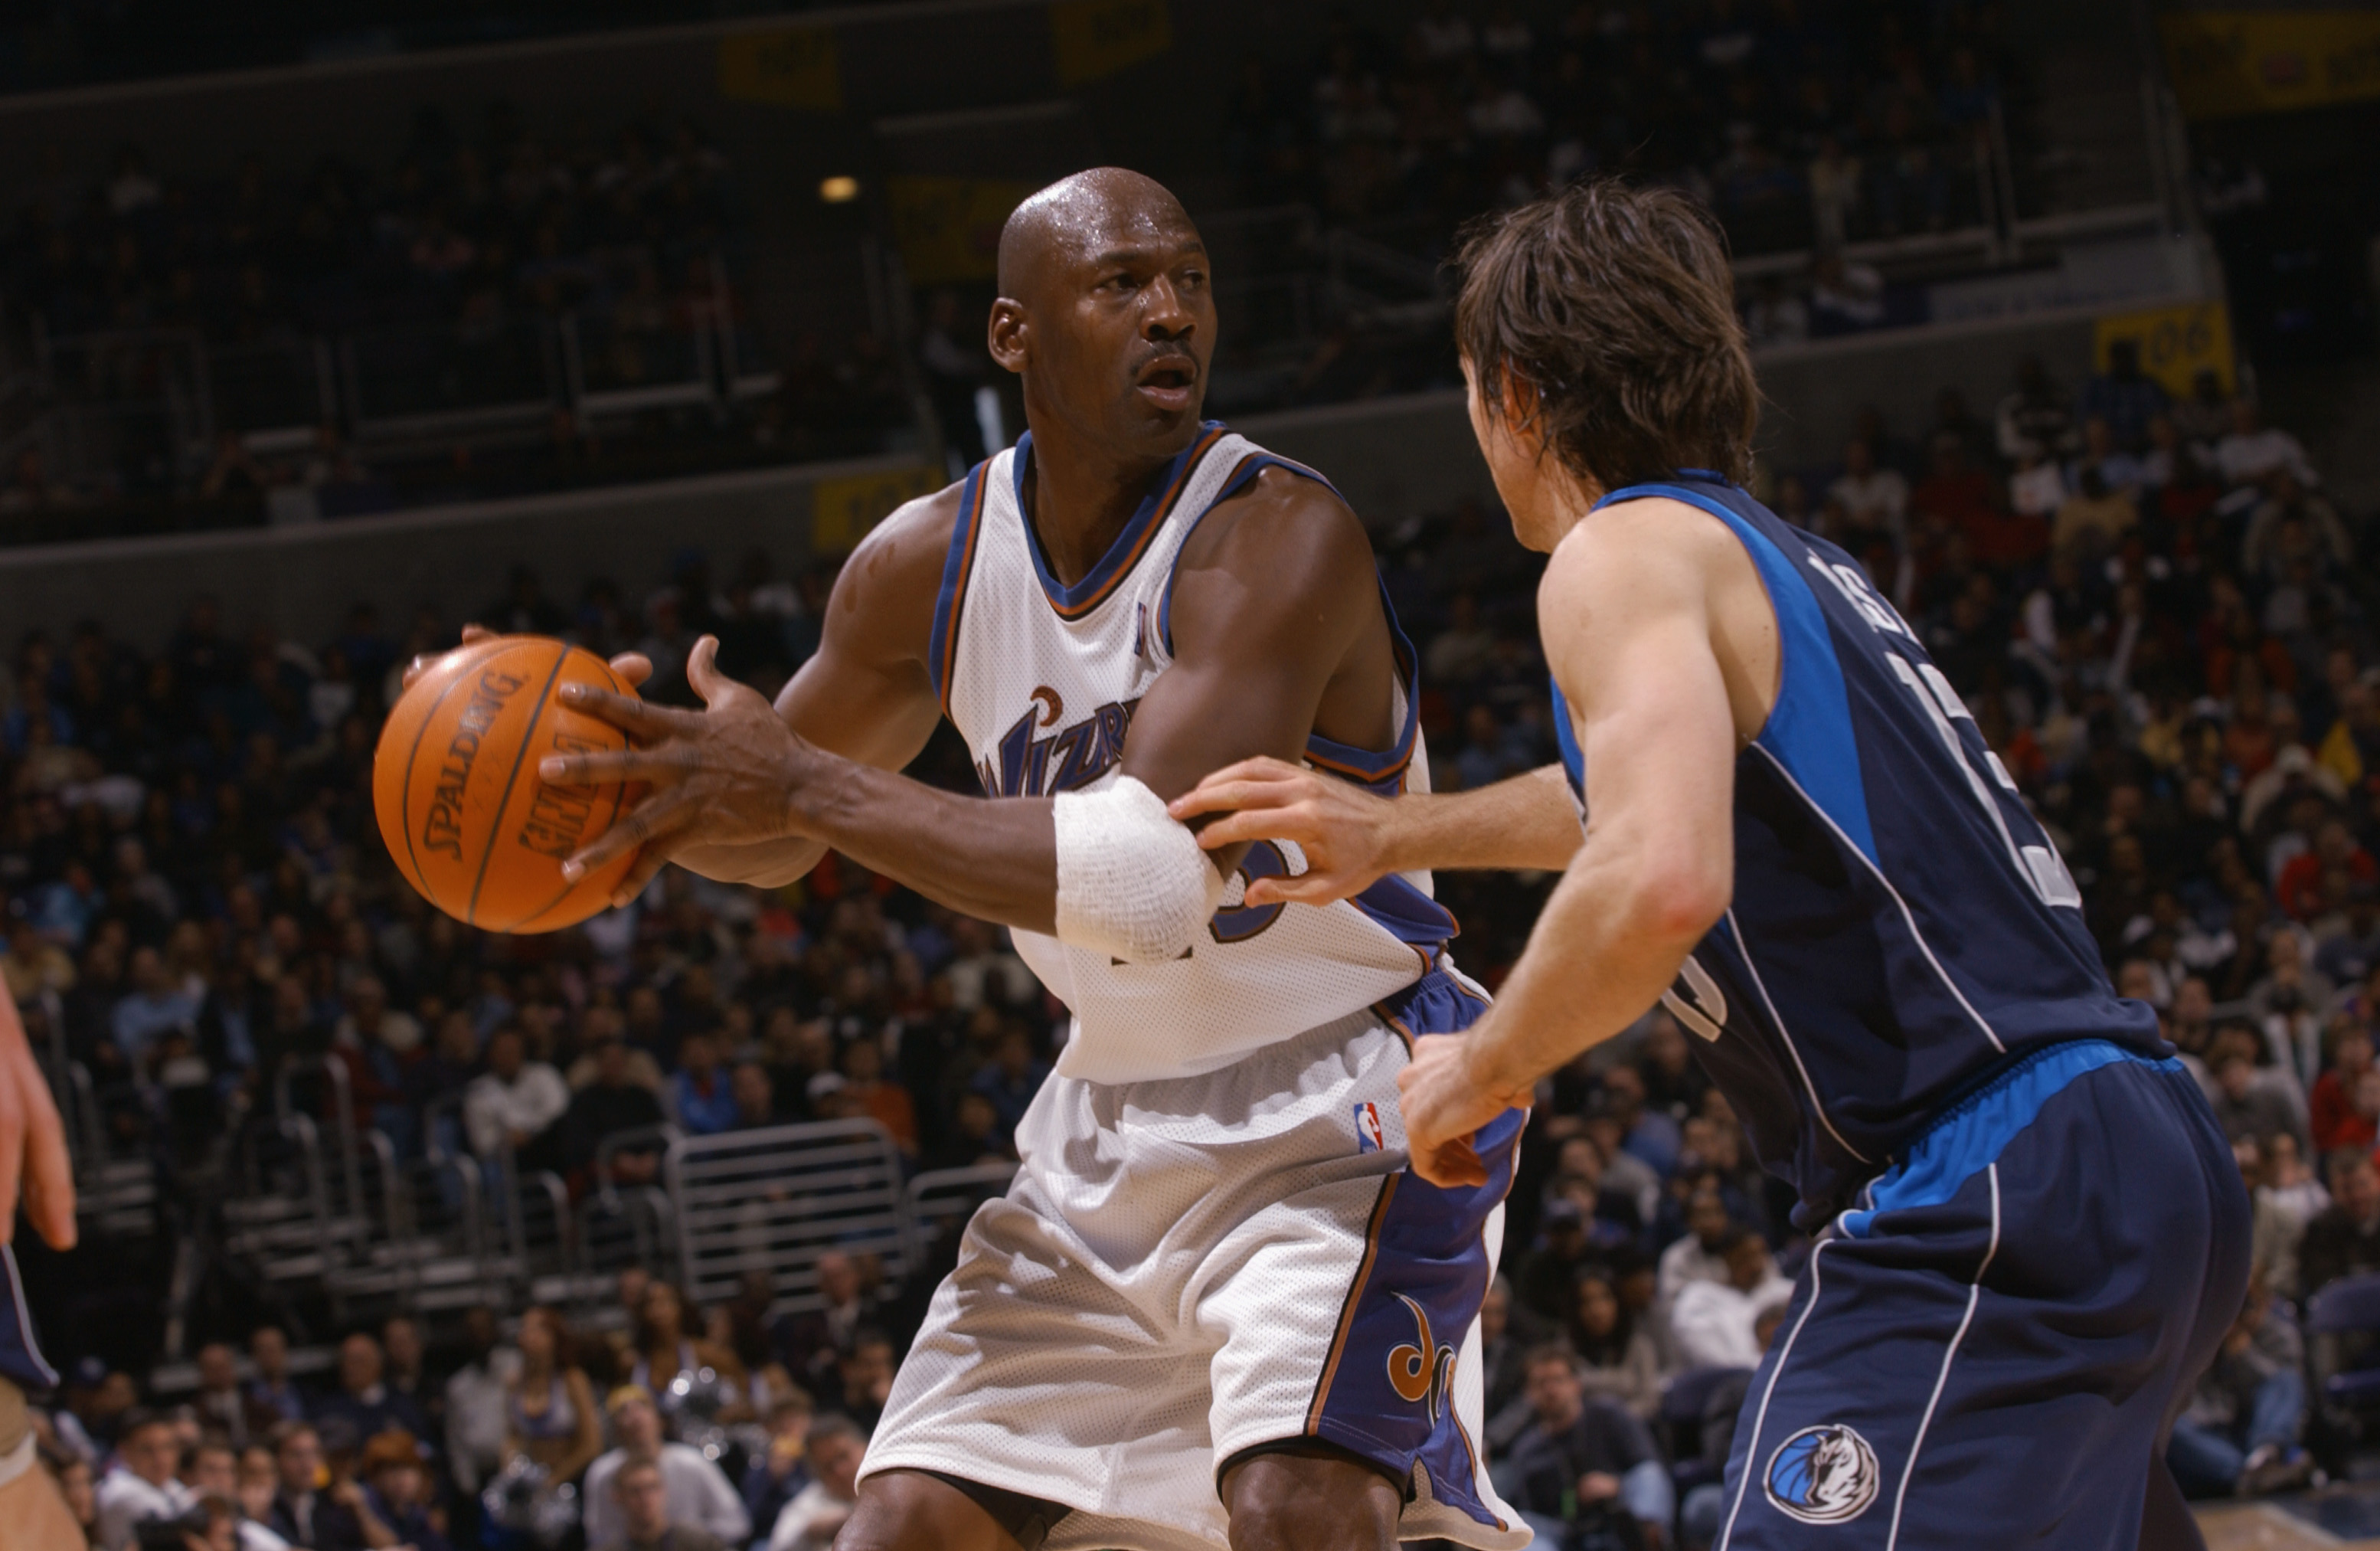 WASHINGTON - FEBRUARY 23:  Michael Jordan #23 of the Washington Wizards is defended by Steve Nash #13 of the Dallas Mavericks during the NBA game at MCI Center on February 23, 2003 in Washington, D.C.  The Mavericks won in overtime 106-101.  NOTE TO USER: